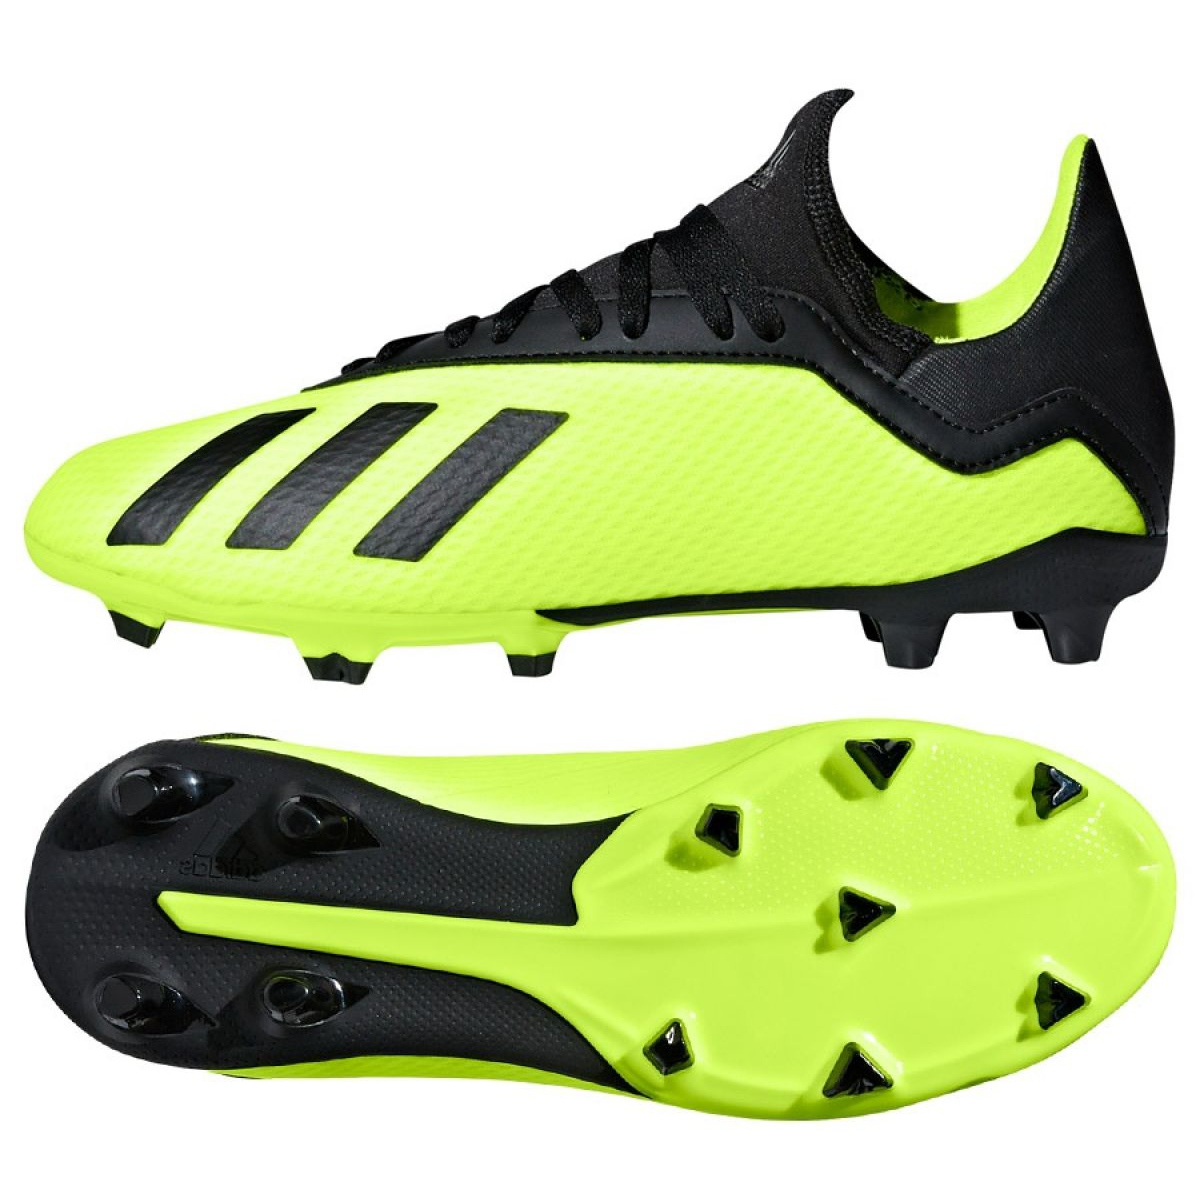 finest selection c0171 273ee Football shoes adidas X 18.3 Fg Jr DB2418